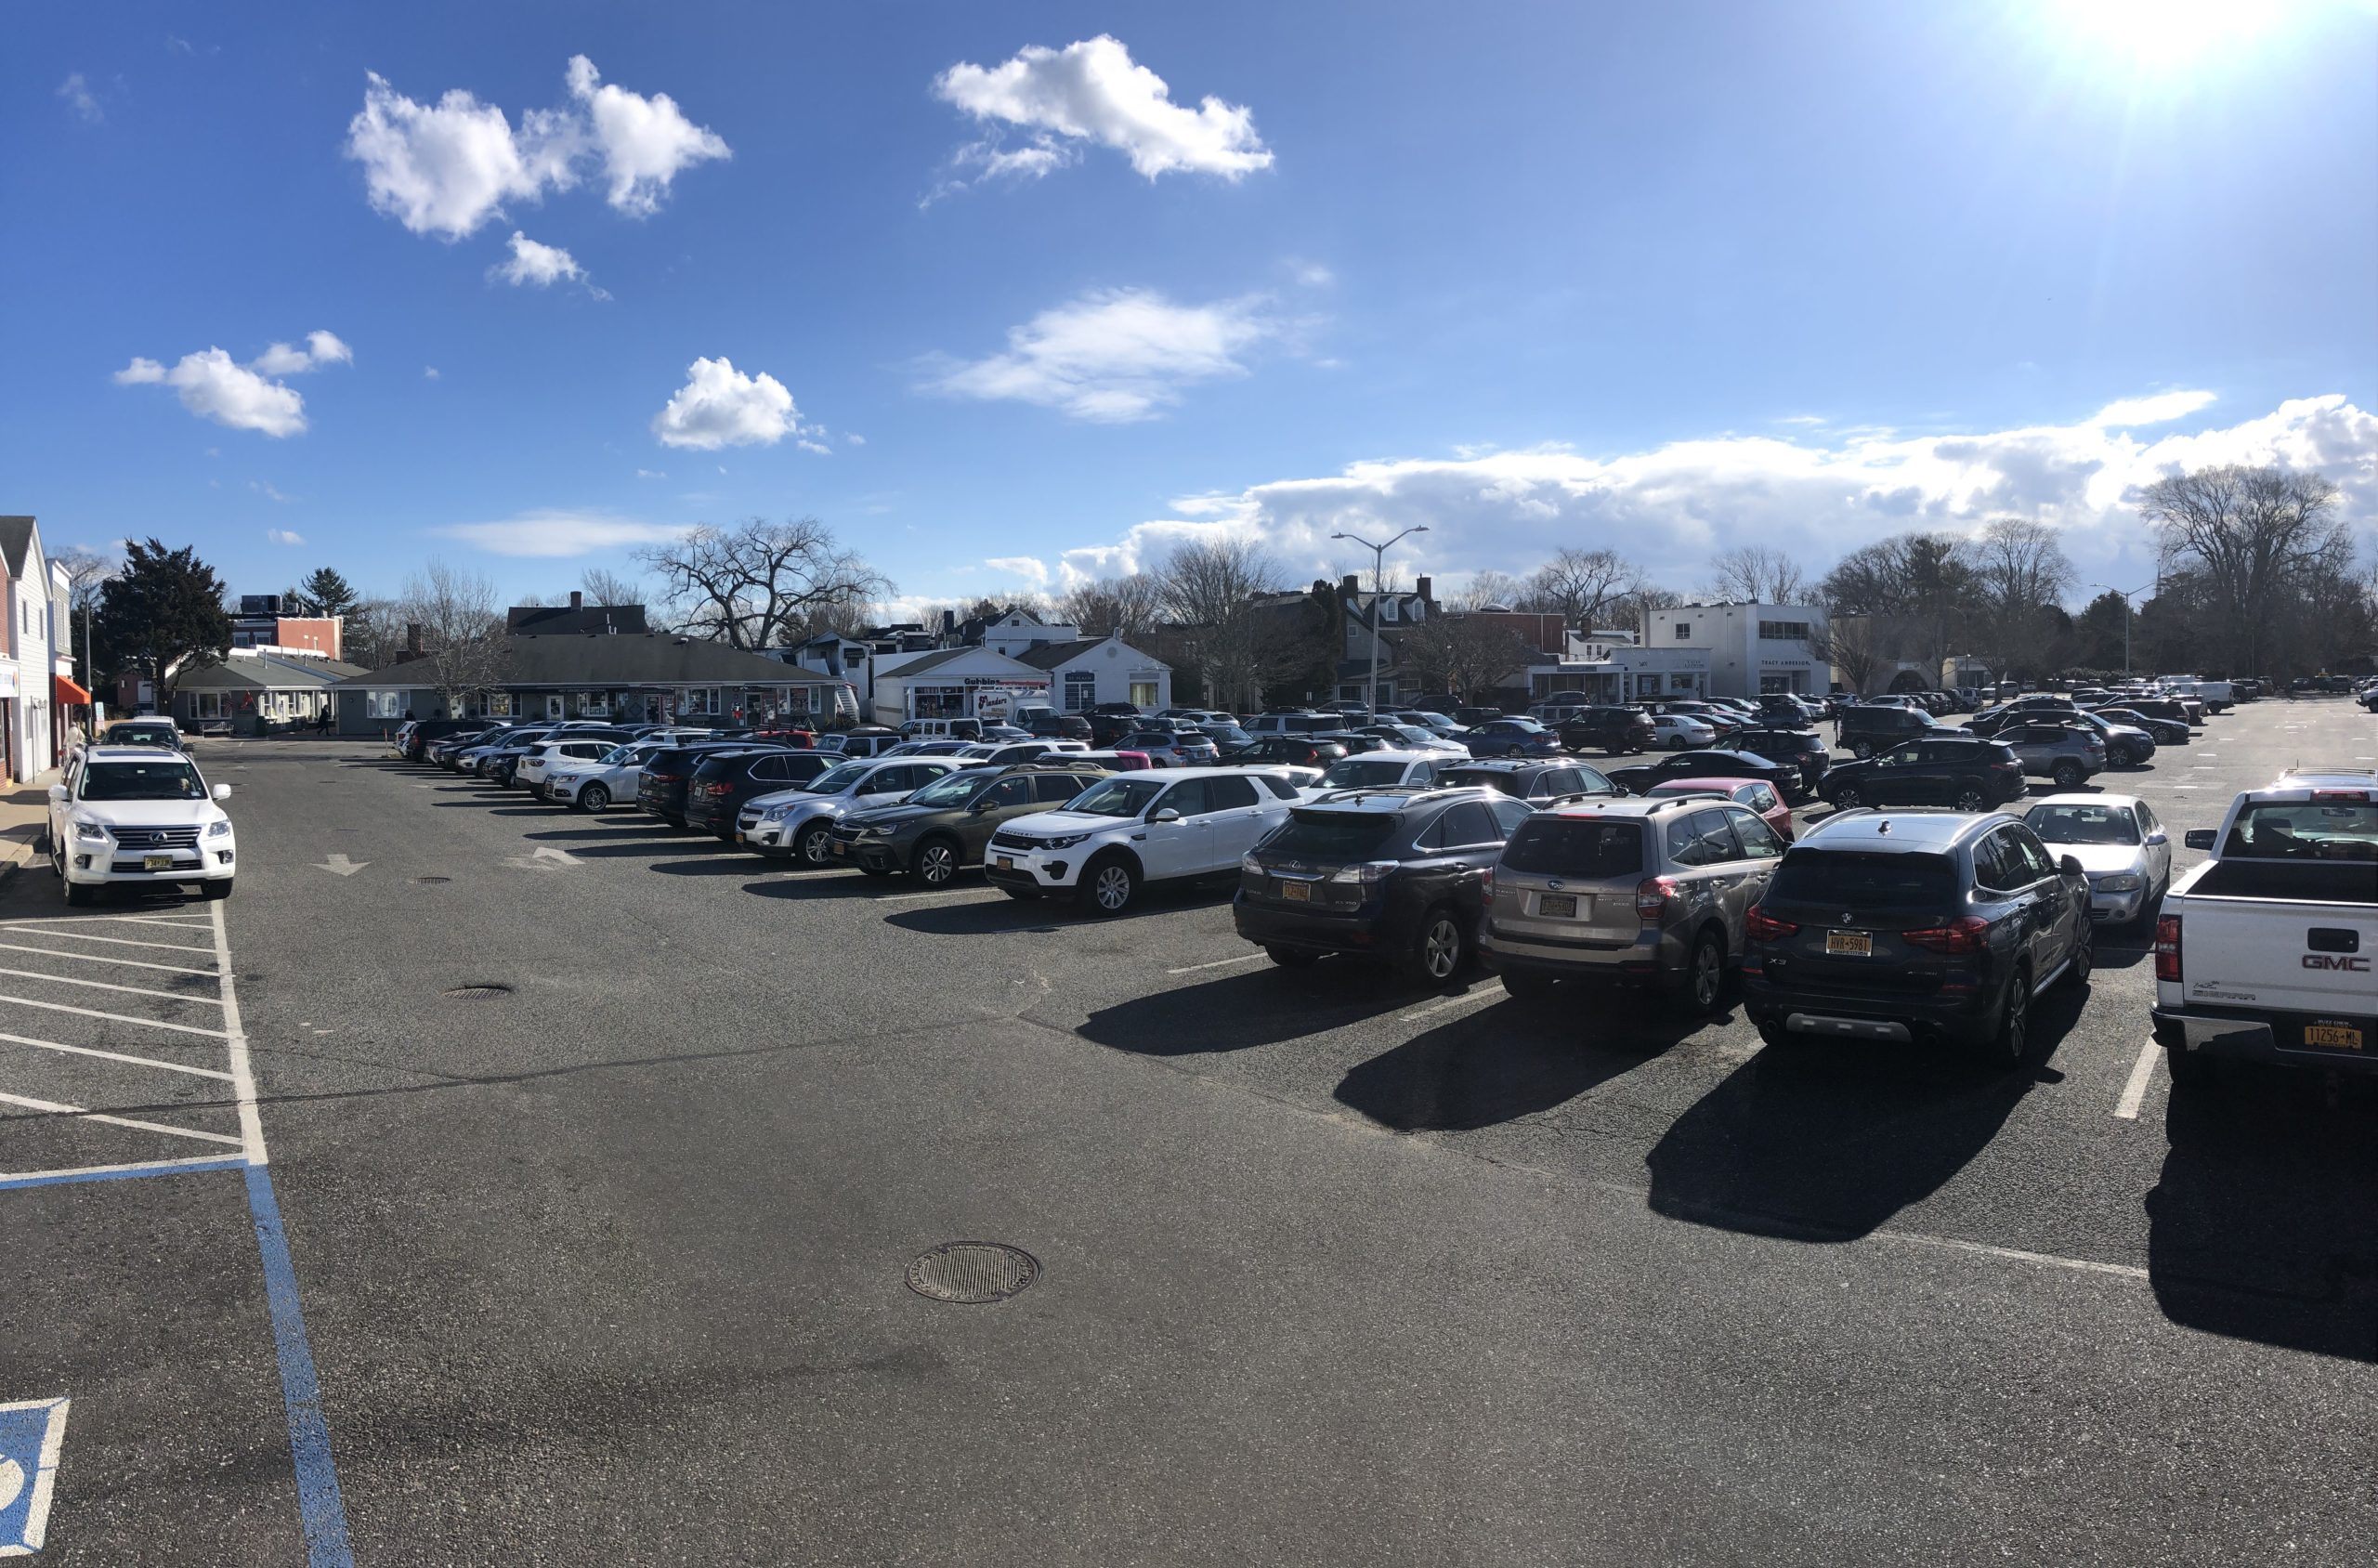 East Hampton Village adopted a new paid parking policy that will allow parking in the village's main lots  for an extra hour, for a fee.